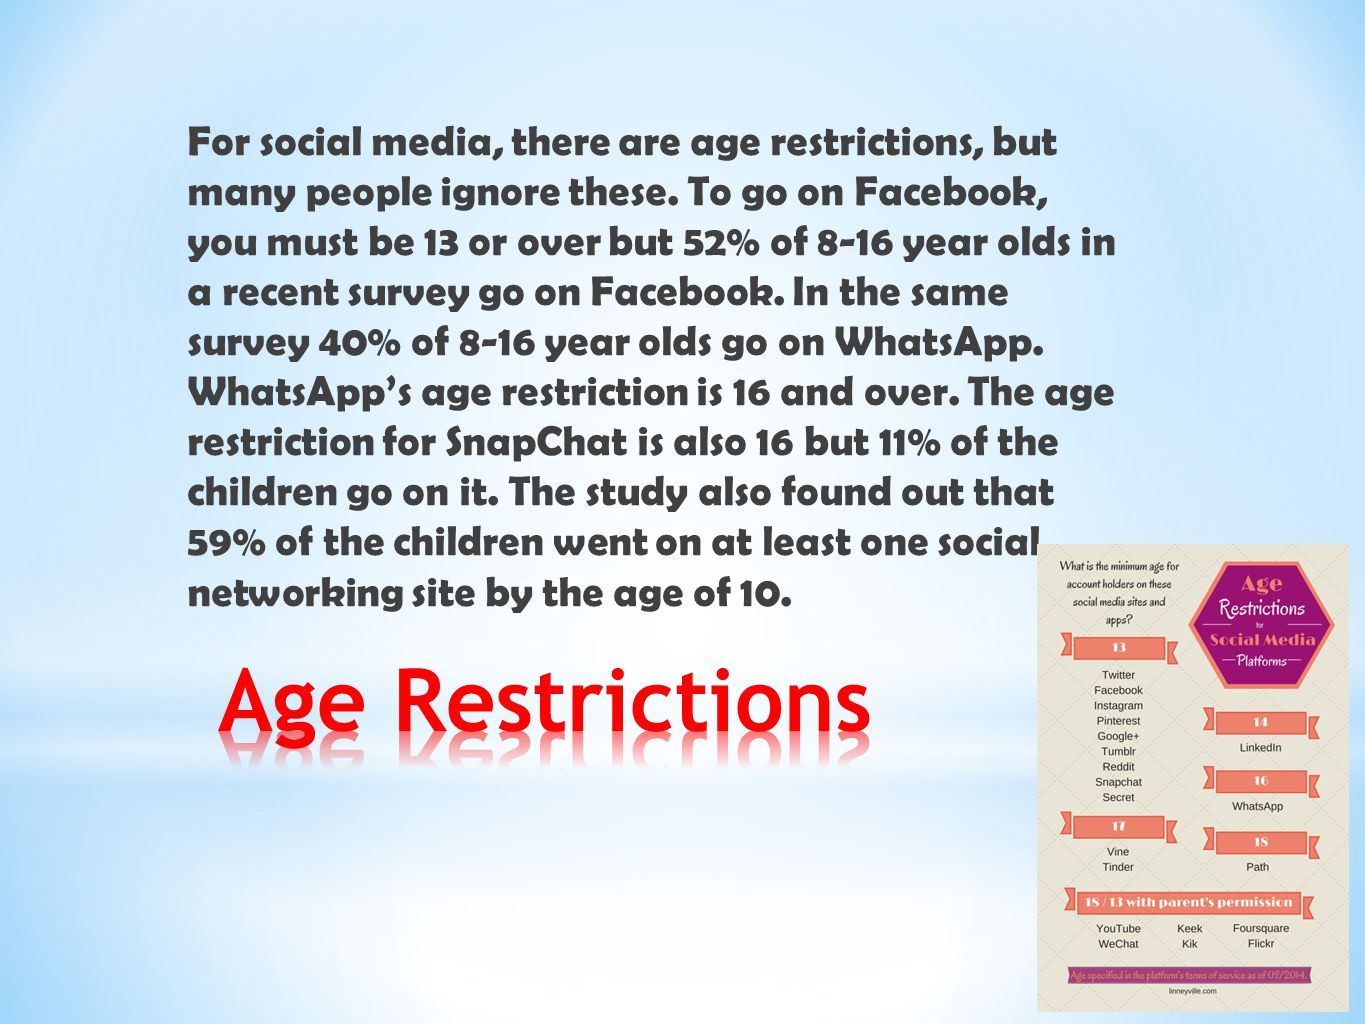 For social media, there are age restrictions, but many people ignore these. To go on Facebook, you must be 13 or over but 52% of 8-16 year olds in a recent survey go on Facebook. In the same survey 40% of 8-16 year olds go on WhatsApp. WhatsApp's age restriction is 16 and over. The age restriction for SnapChat is also 16 but 11% of the children go on it. The study also found out that 59% of the children went on at least one social networking site by the age of 10.